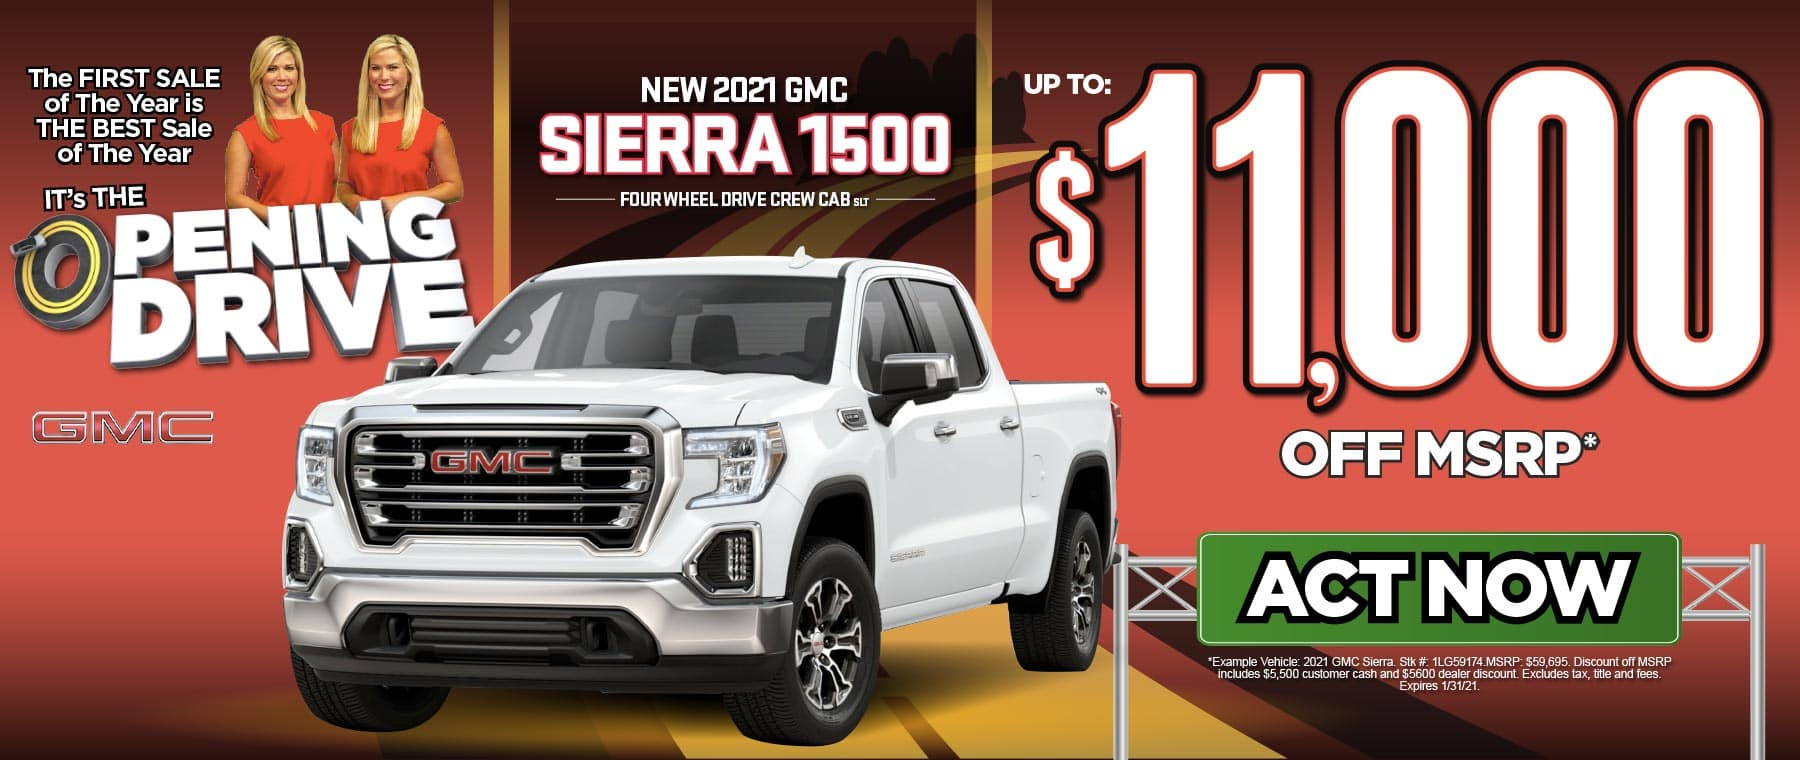 New 2021 GMC Sierra 1500 4WD Crew Cab SLT Over $11,000 Off MSRP*